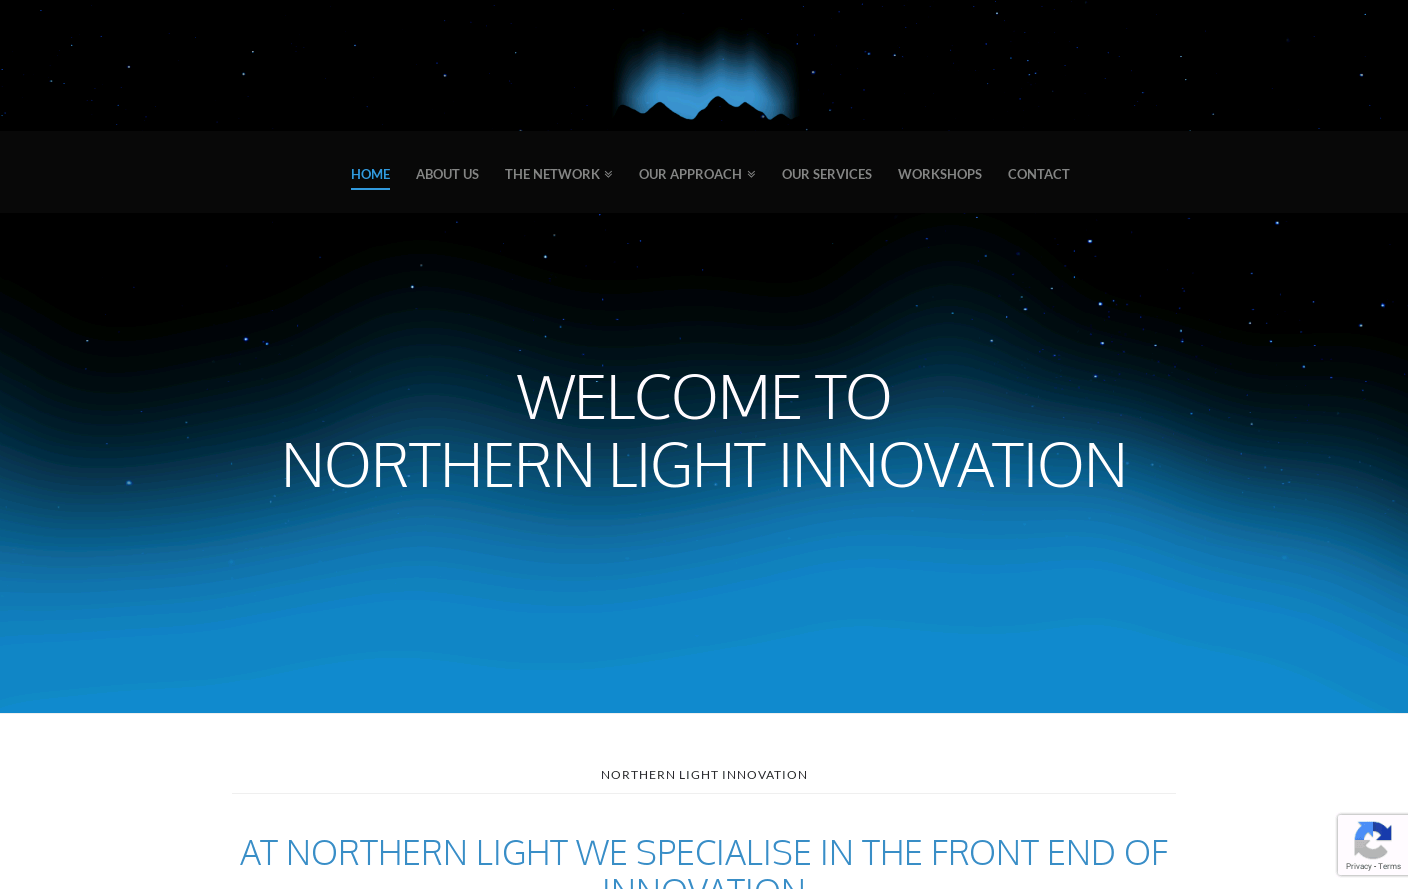 Northern Light Innovation